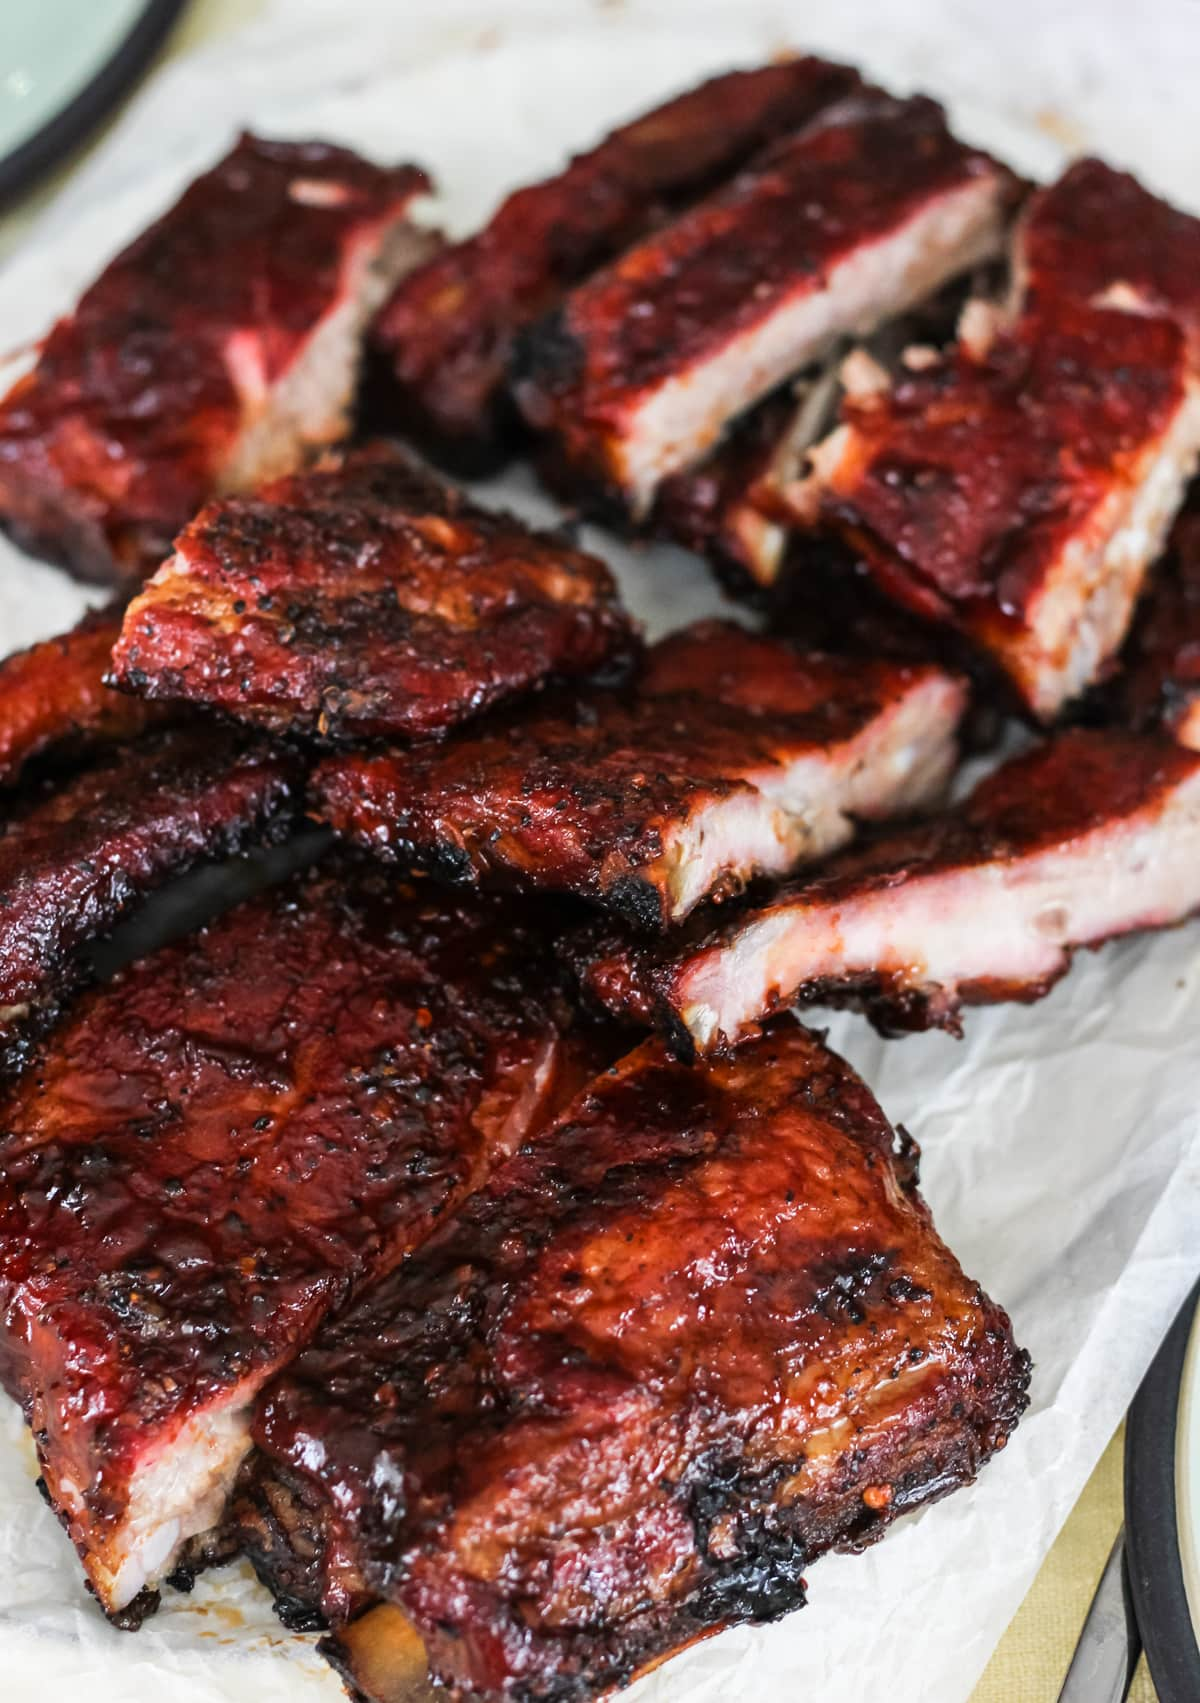 a parchment paper lined tray filled with cut saucy barbecued ribs cut into pieces